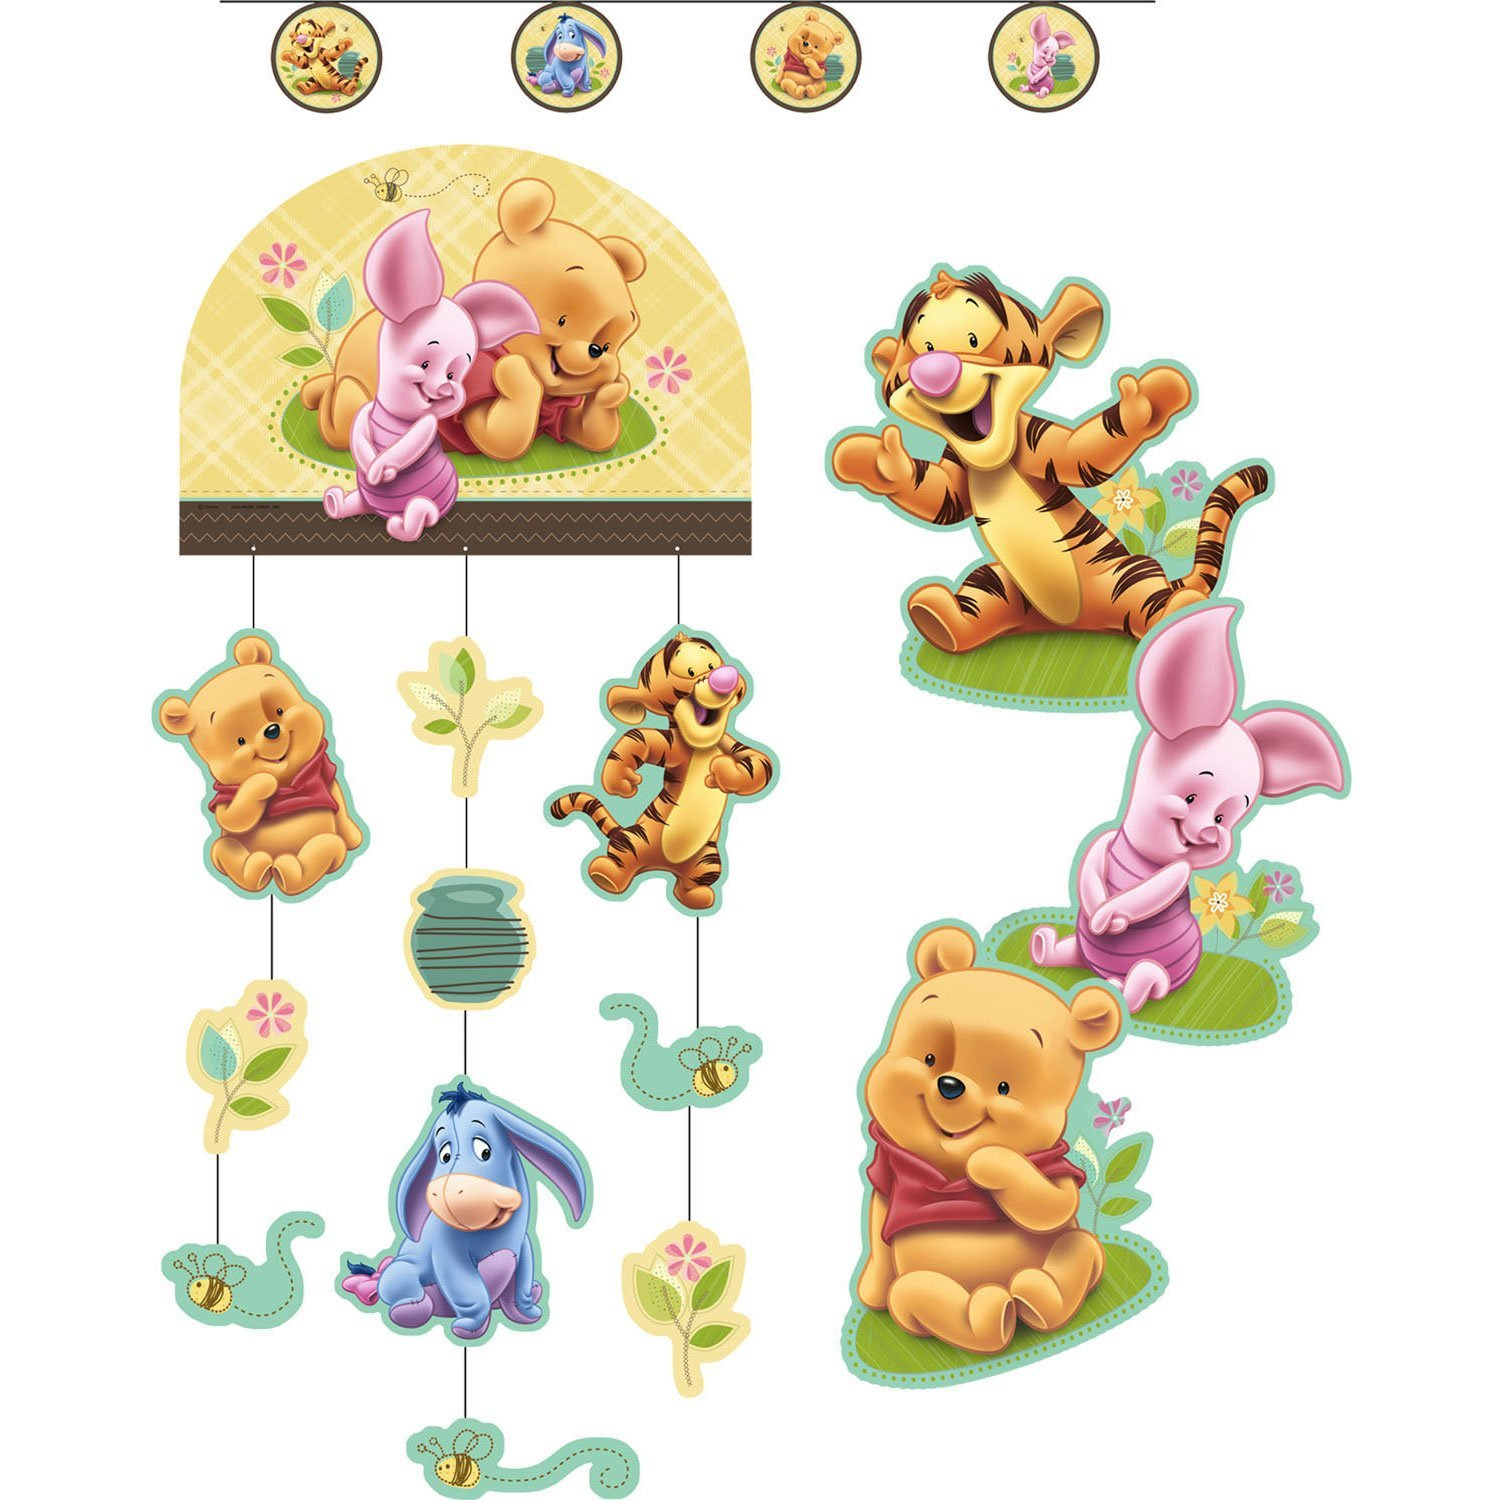 Baby Pooh ABC Party Supplies Your One Stop Specialty Store